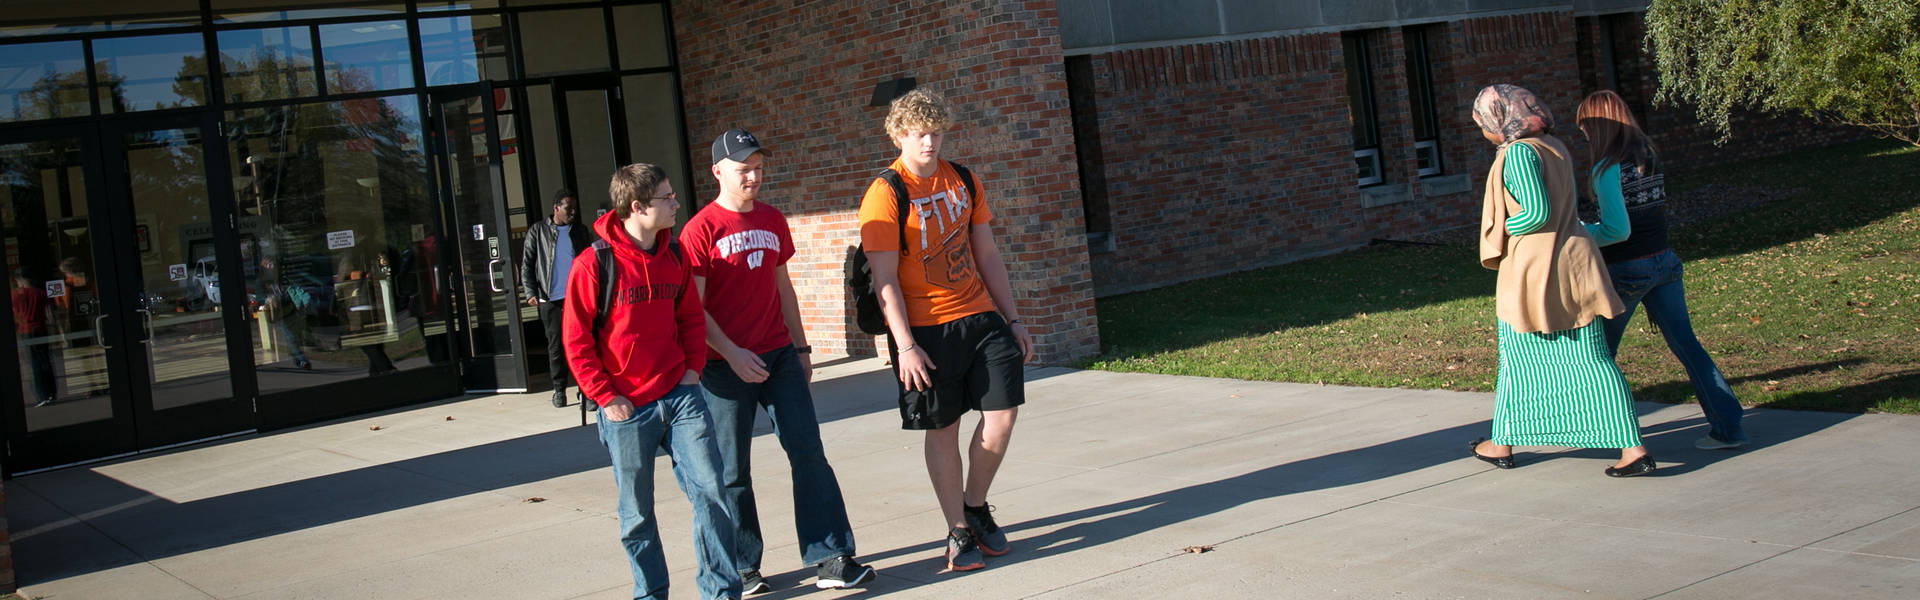 Student walking in an dout of Commons building, Rice Lake